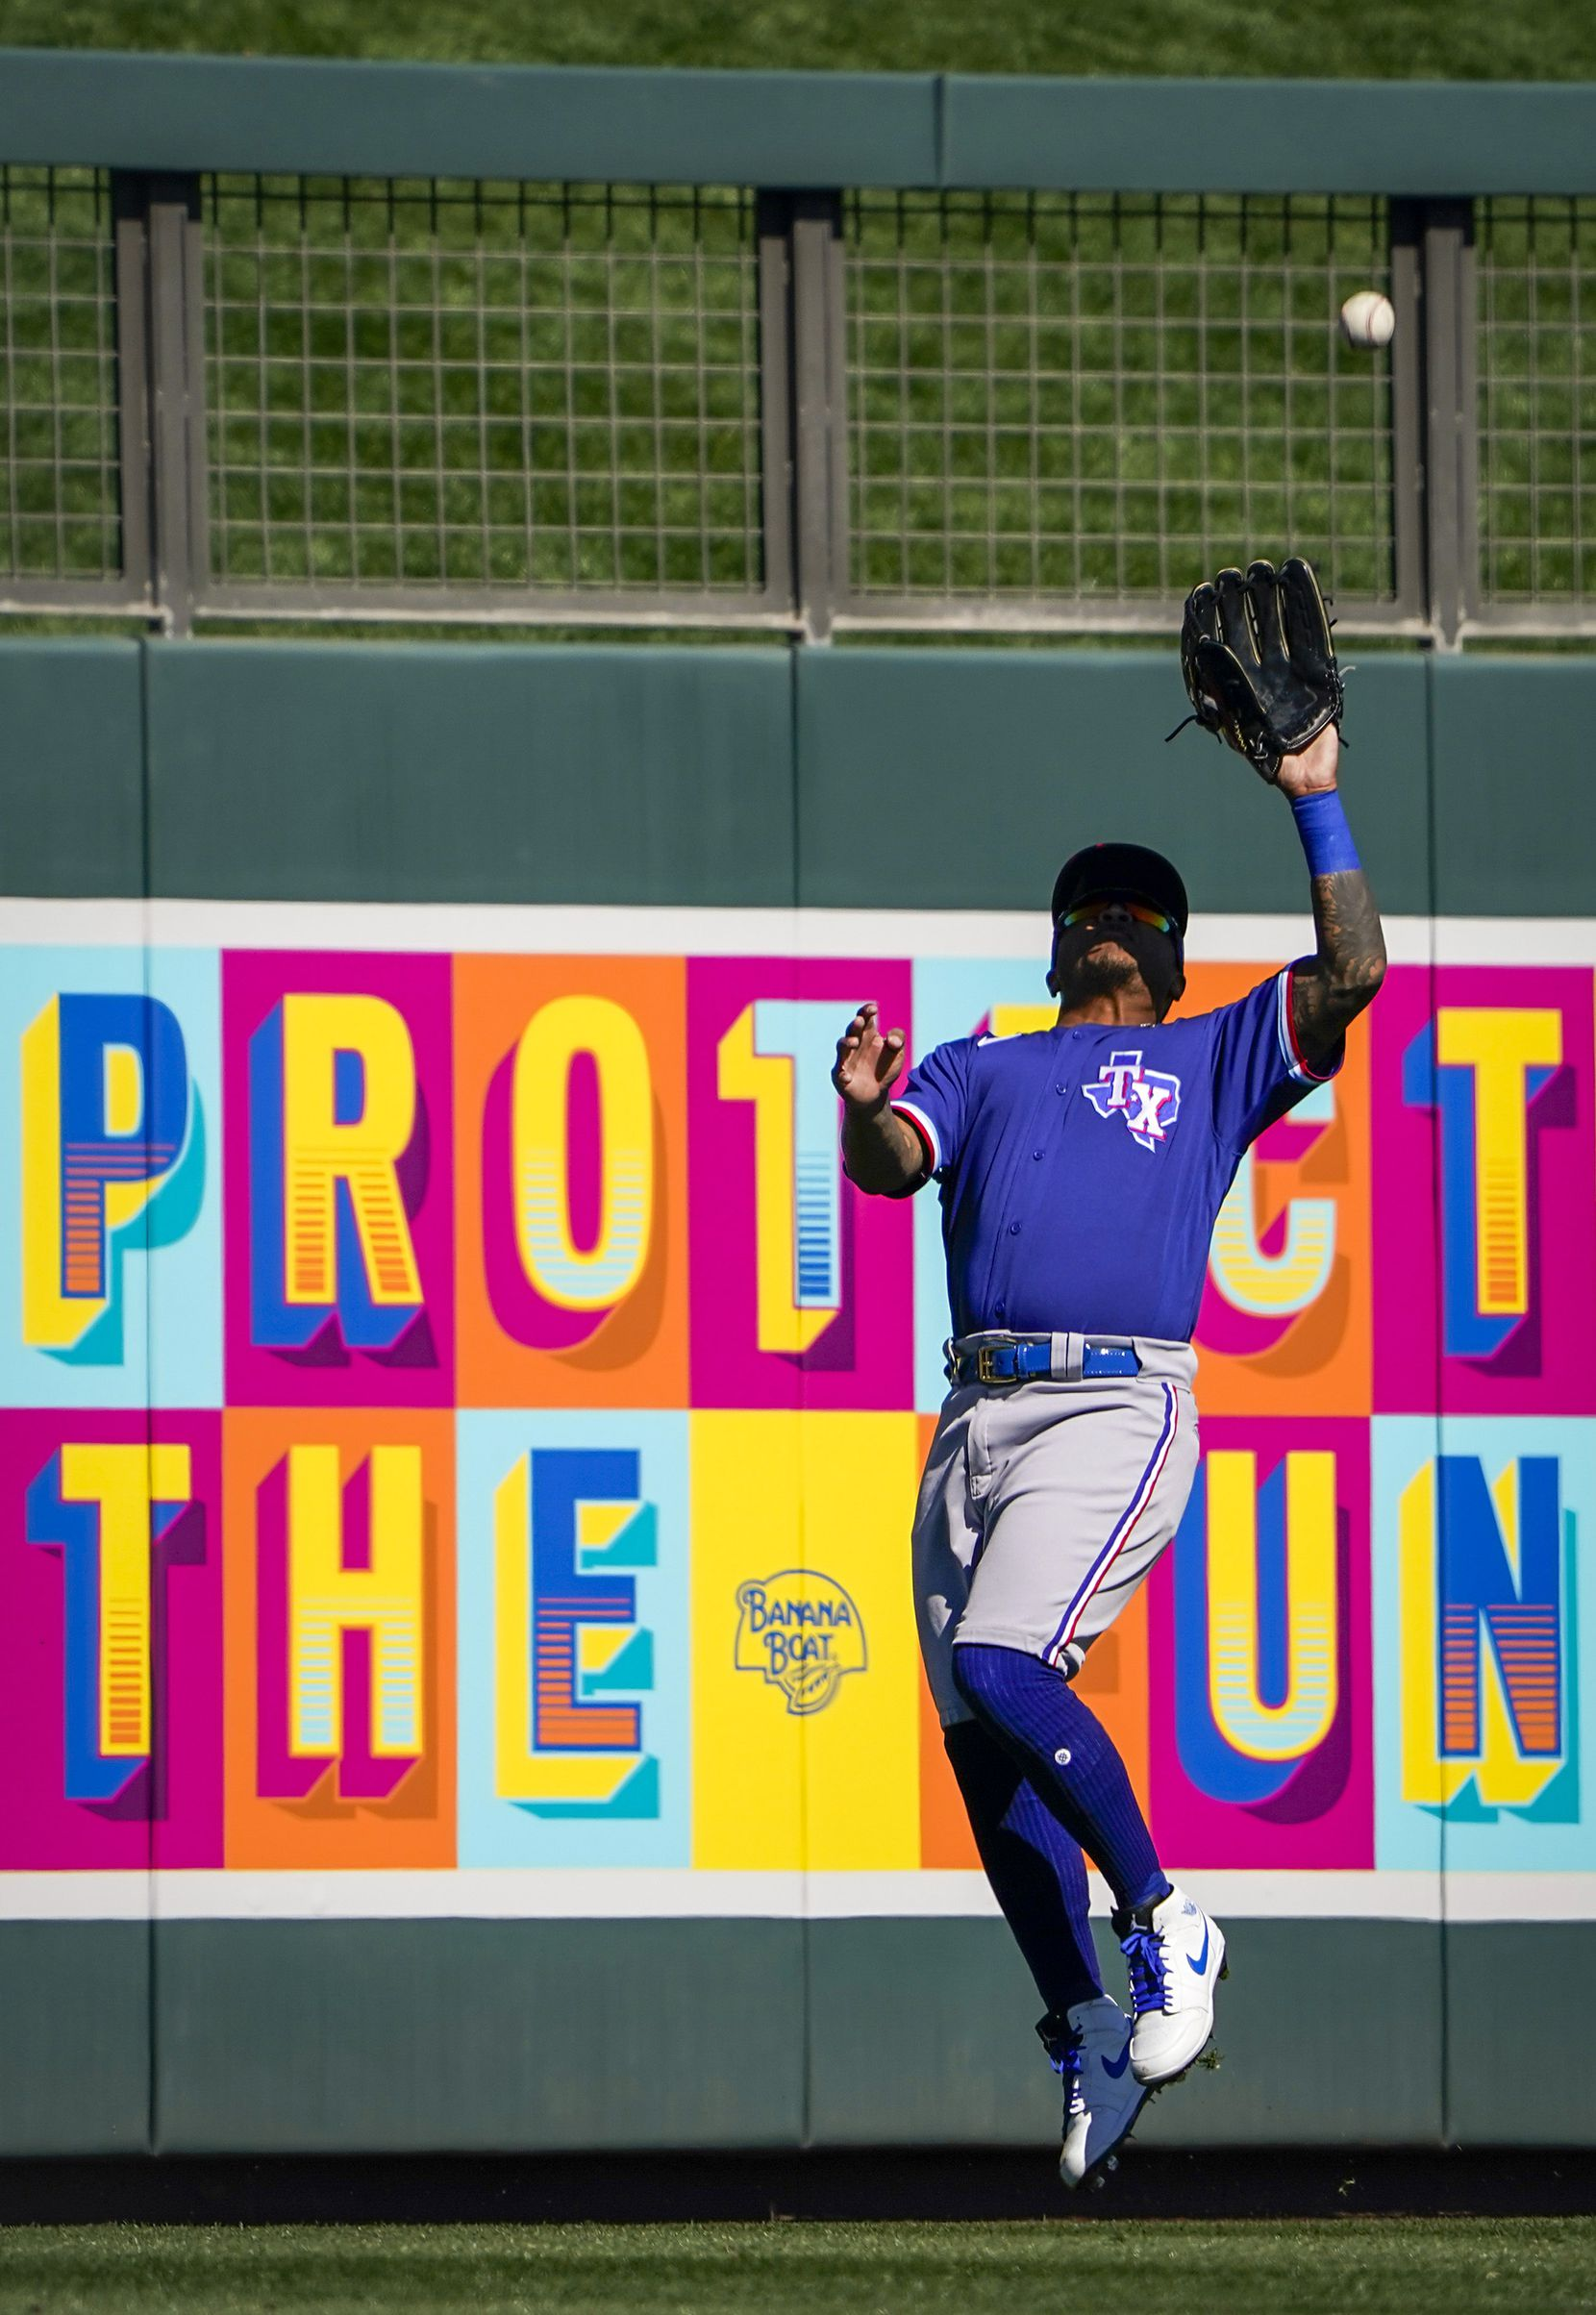 Texas Rangers outfielder Willie Calhoun makes a leaping catch on a line drive off the bat of Colorado Rockies shortstop Chris Owings during the third inning of a spring training game at Salt River Fields at Talking Stick on Wednesday, Feb. 26, 2020, in Scottsdale, Ariz.